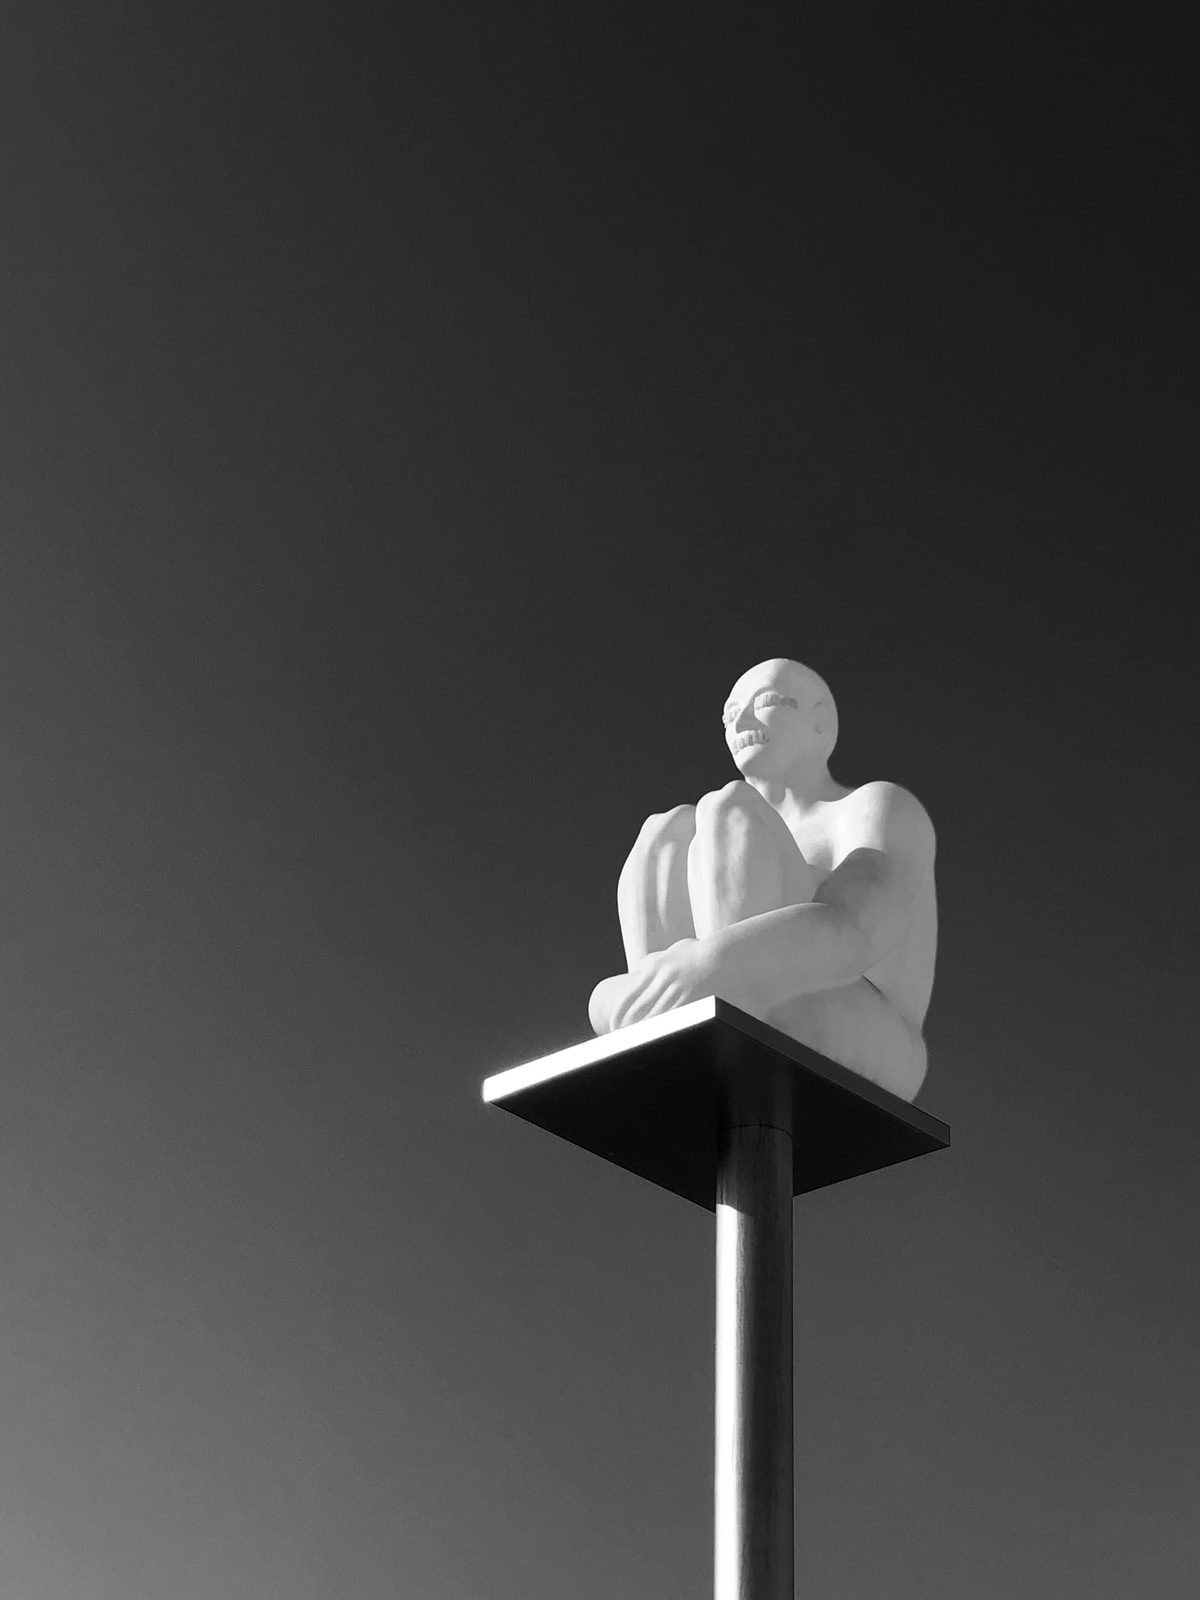 sitting man statue on post